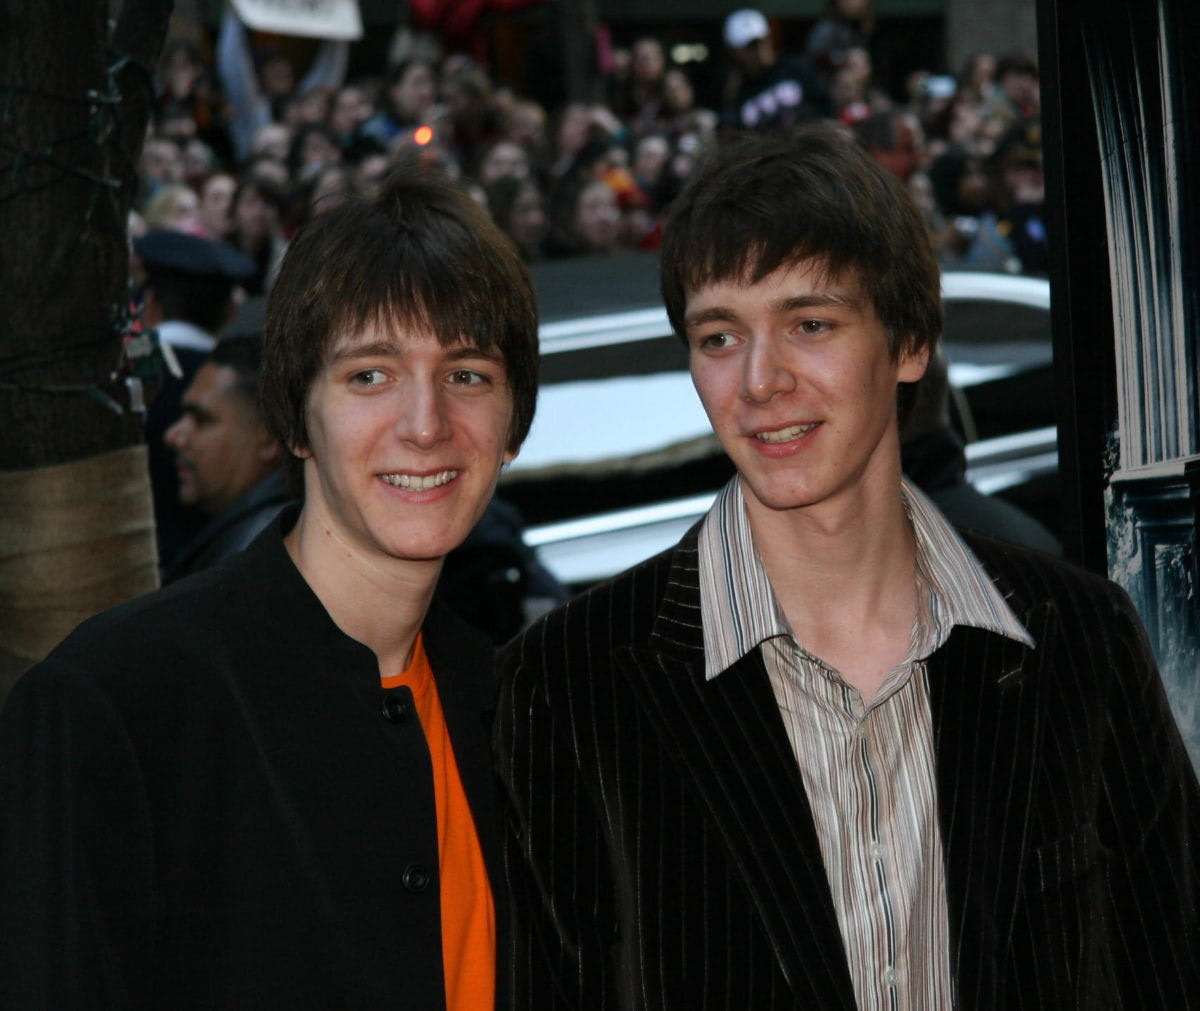 James and Oliver Phelps at the New York City 'Goblet of Fire' premiere